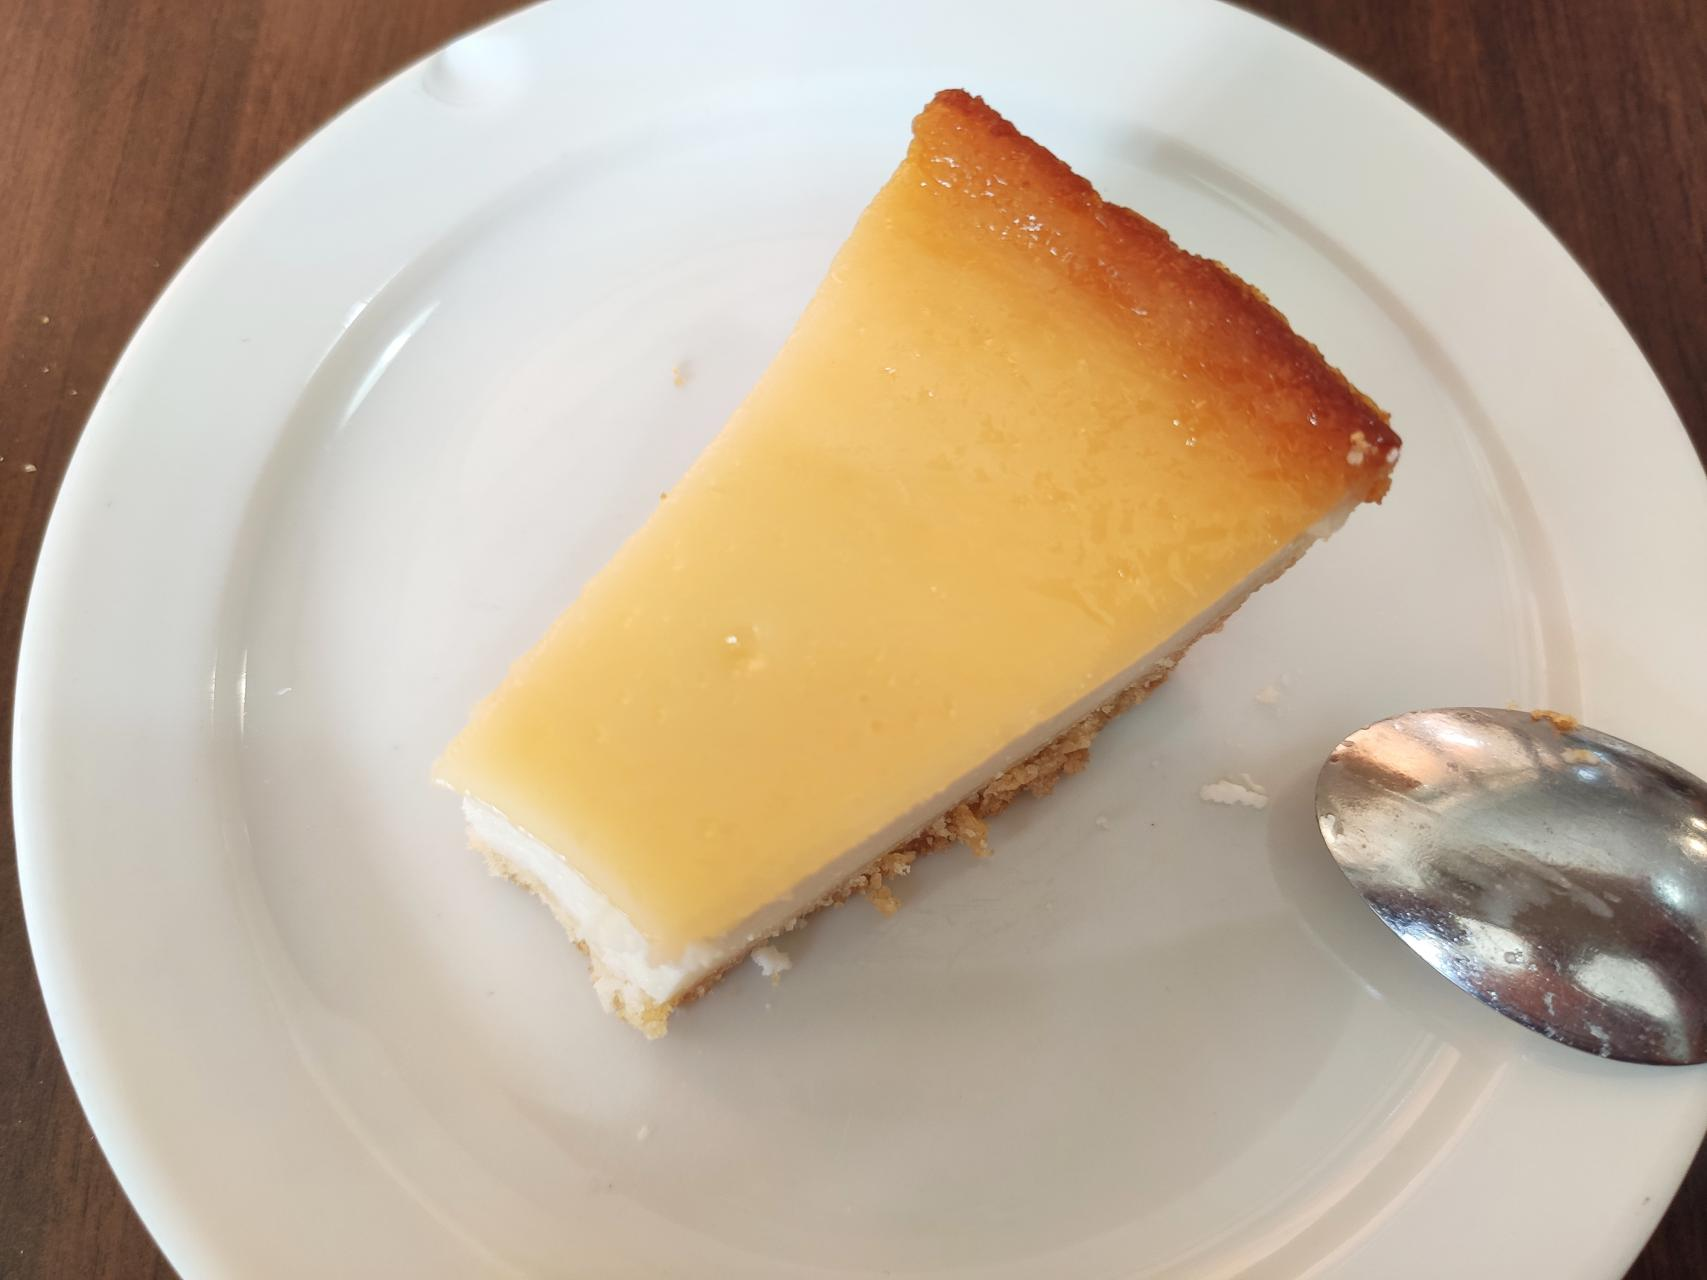 The delicious cheese cake I wasn't patient enough to take a photo of first...